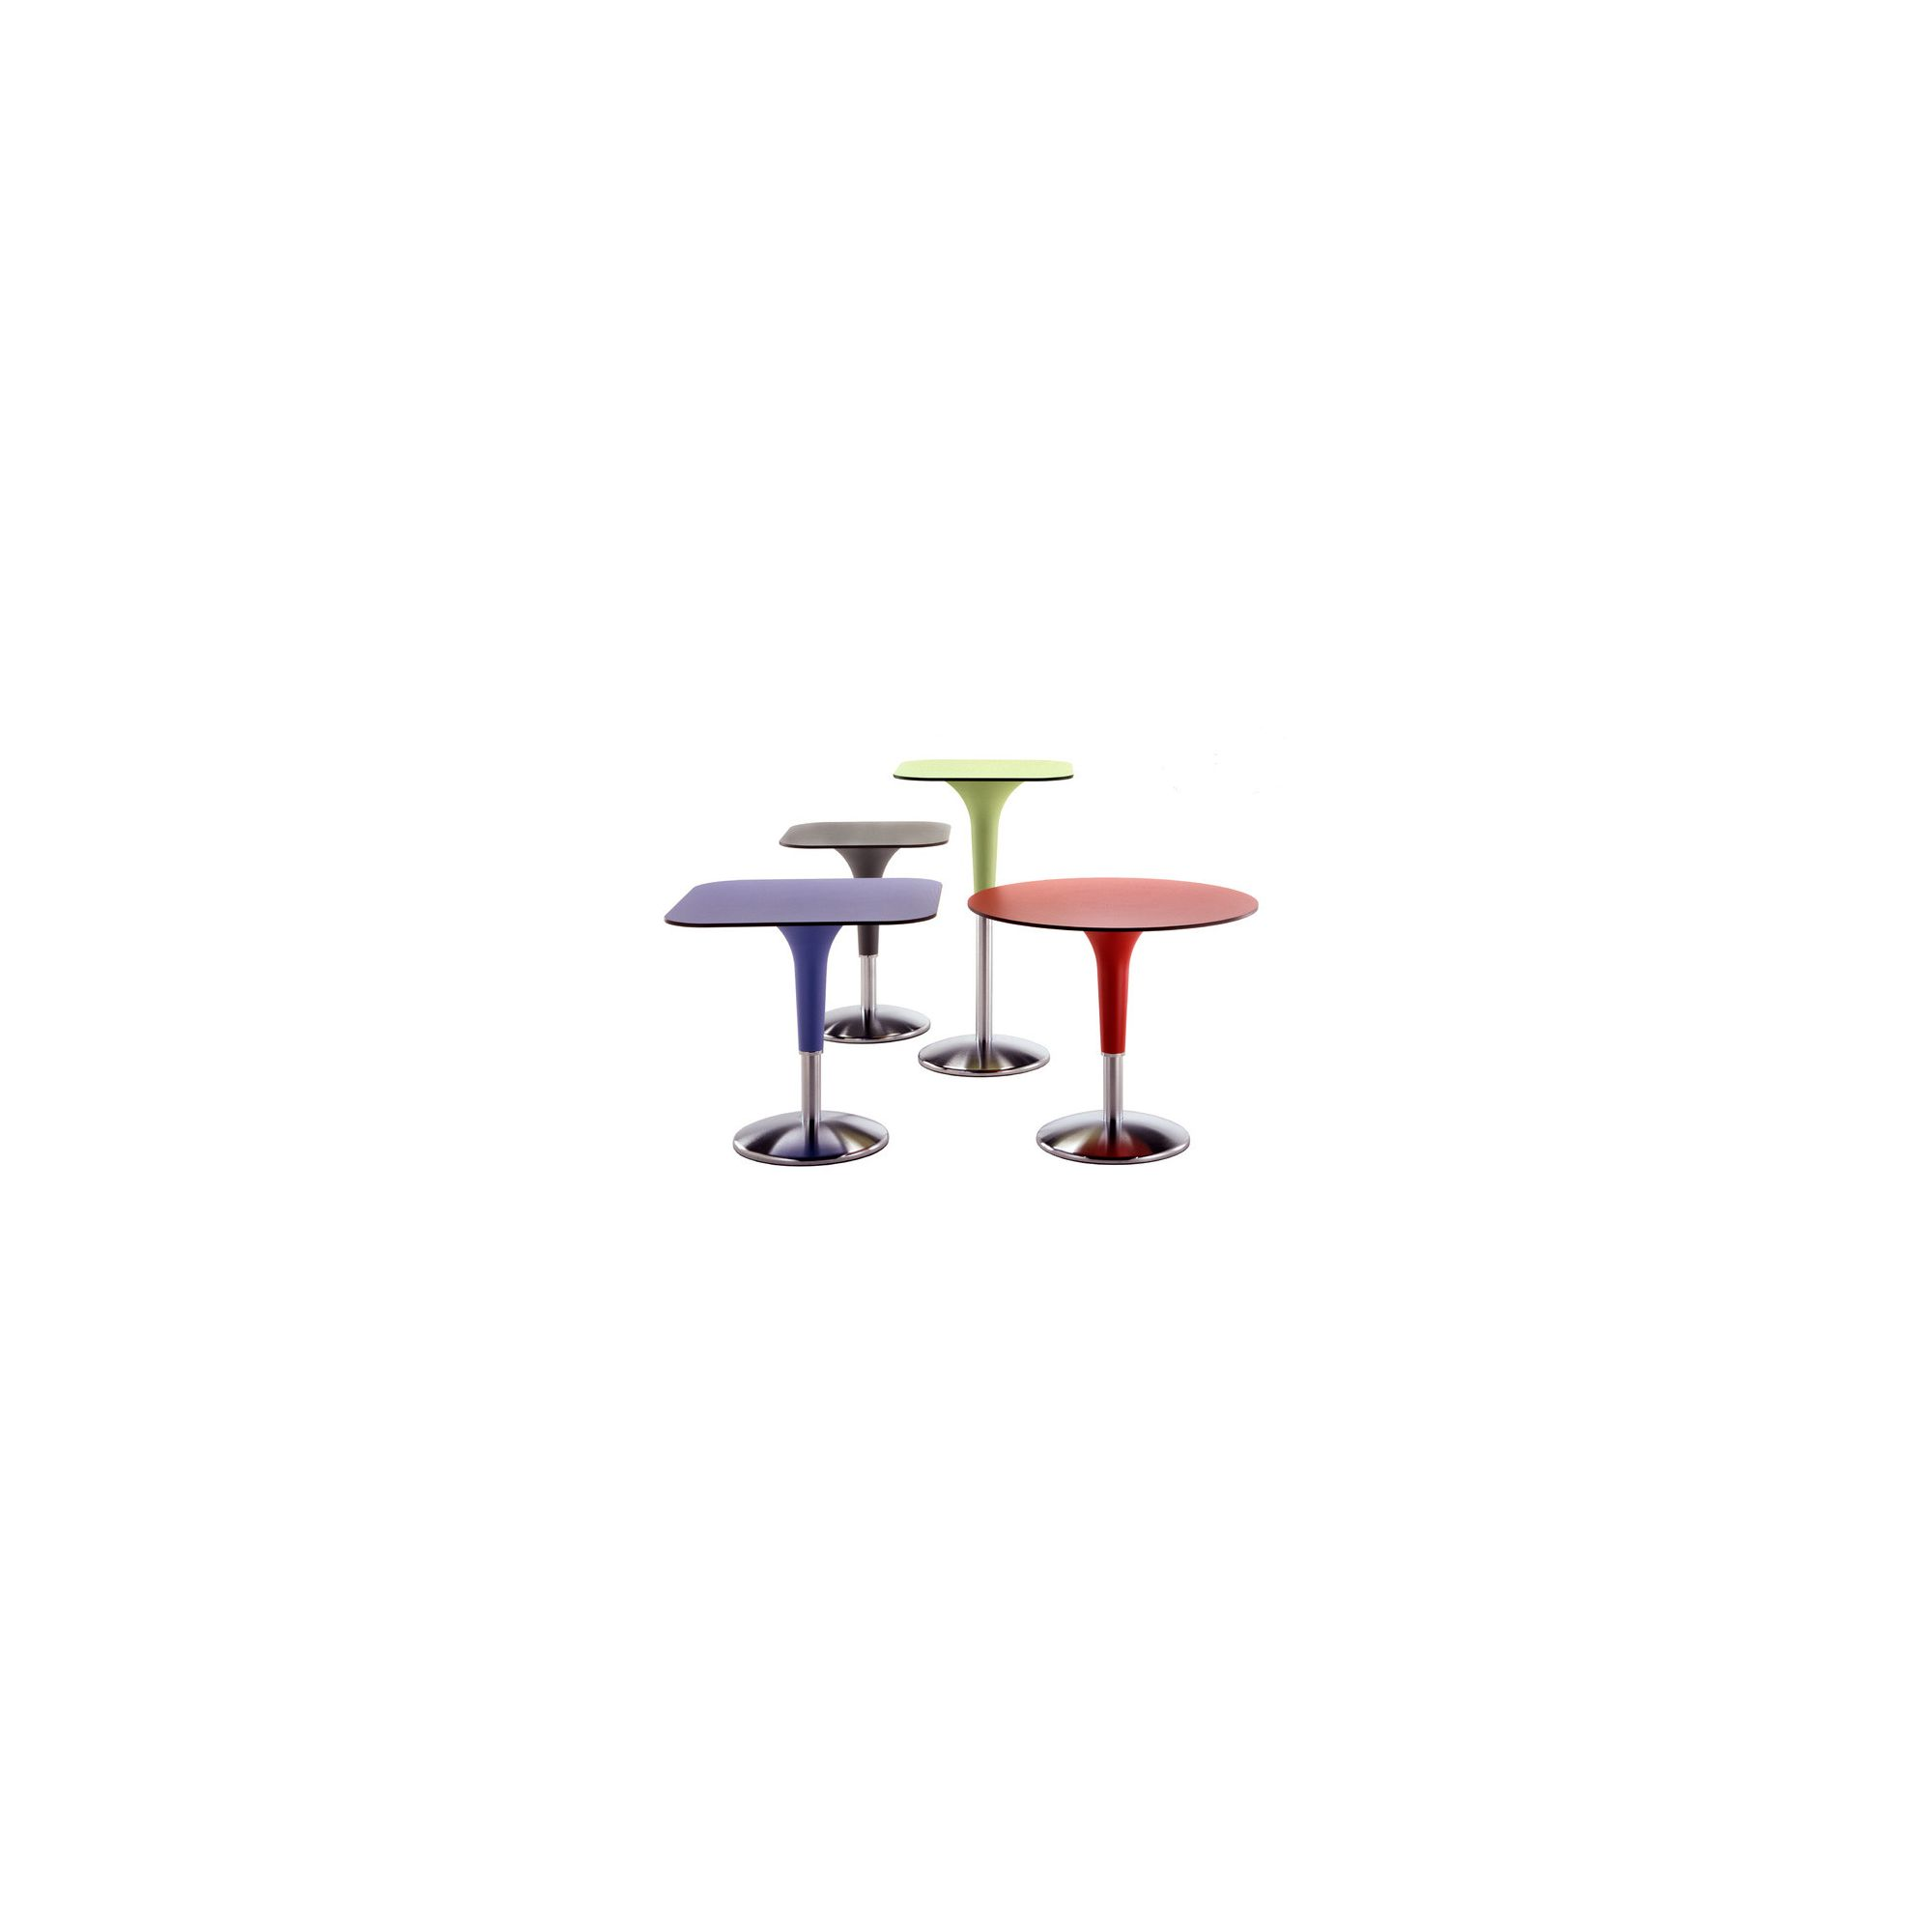 Rexite Zanziplano Square Table - 80cmx 80cm x 105cm - Red at Tesco Direct